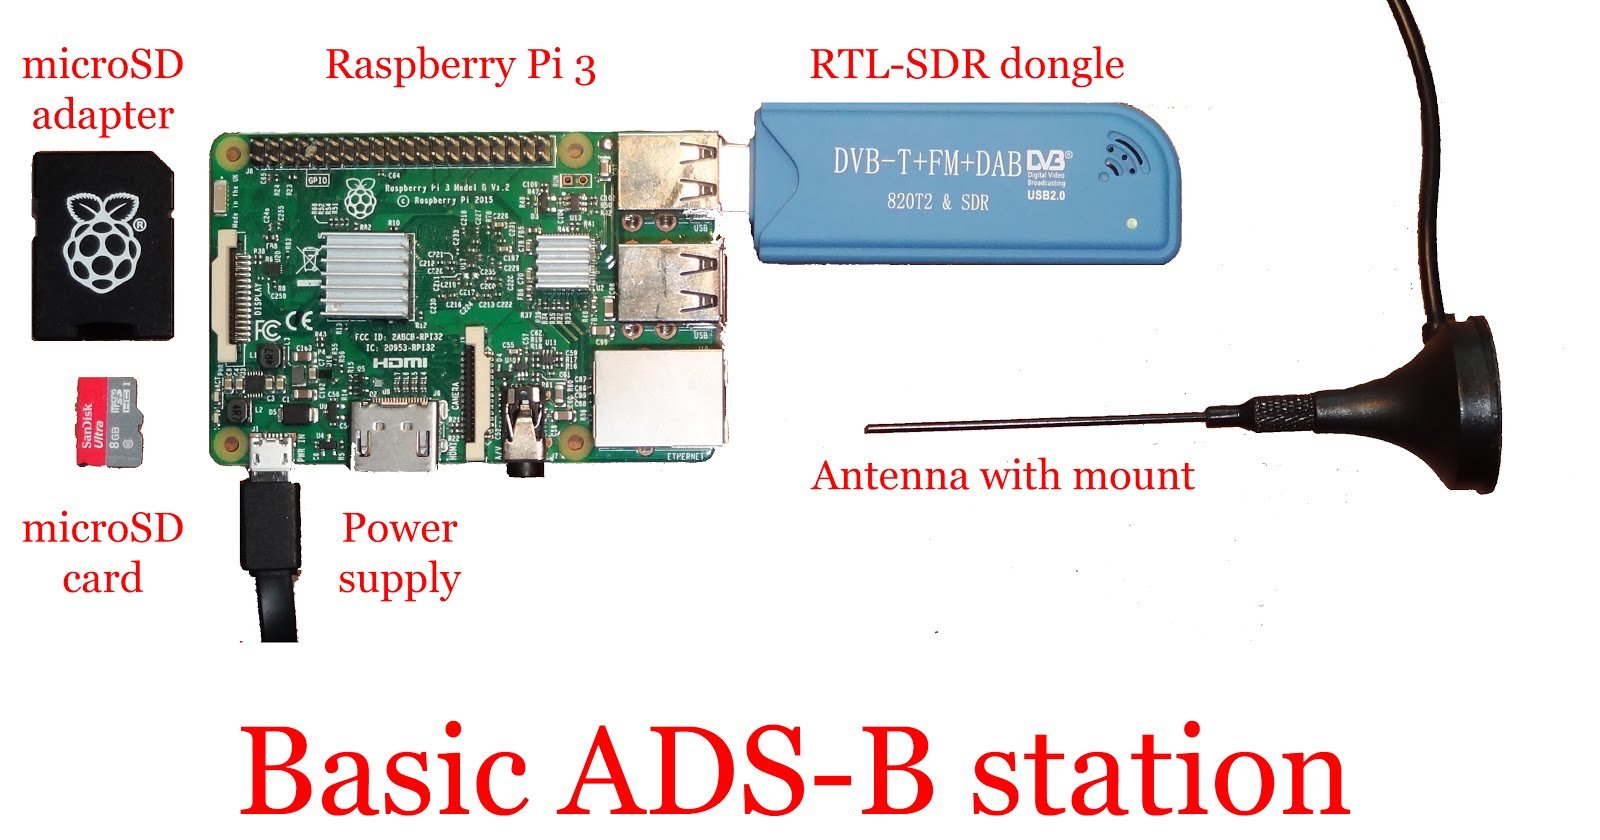 Building An Ads B Station Radio For Everyone Power Supply The Fm Antenna Amplifier Microsd Card And Adapter Computer Raspberry Pi 3 Board Generic Unbranded Rtl Sdr Dongle Cable Comes With